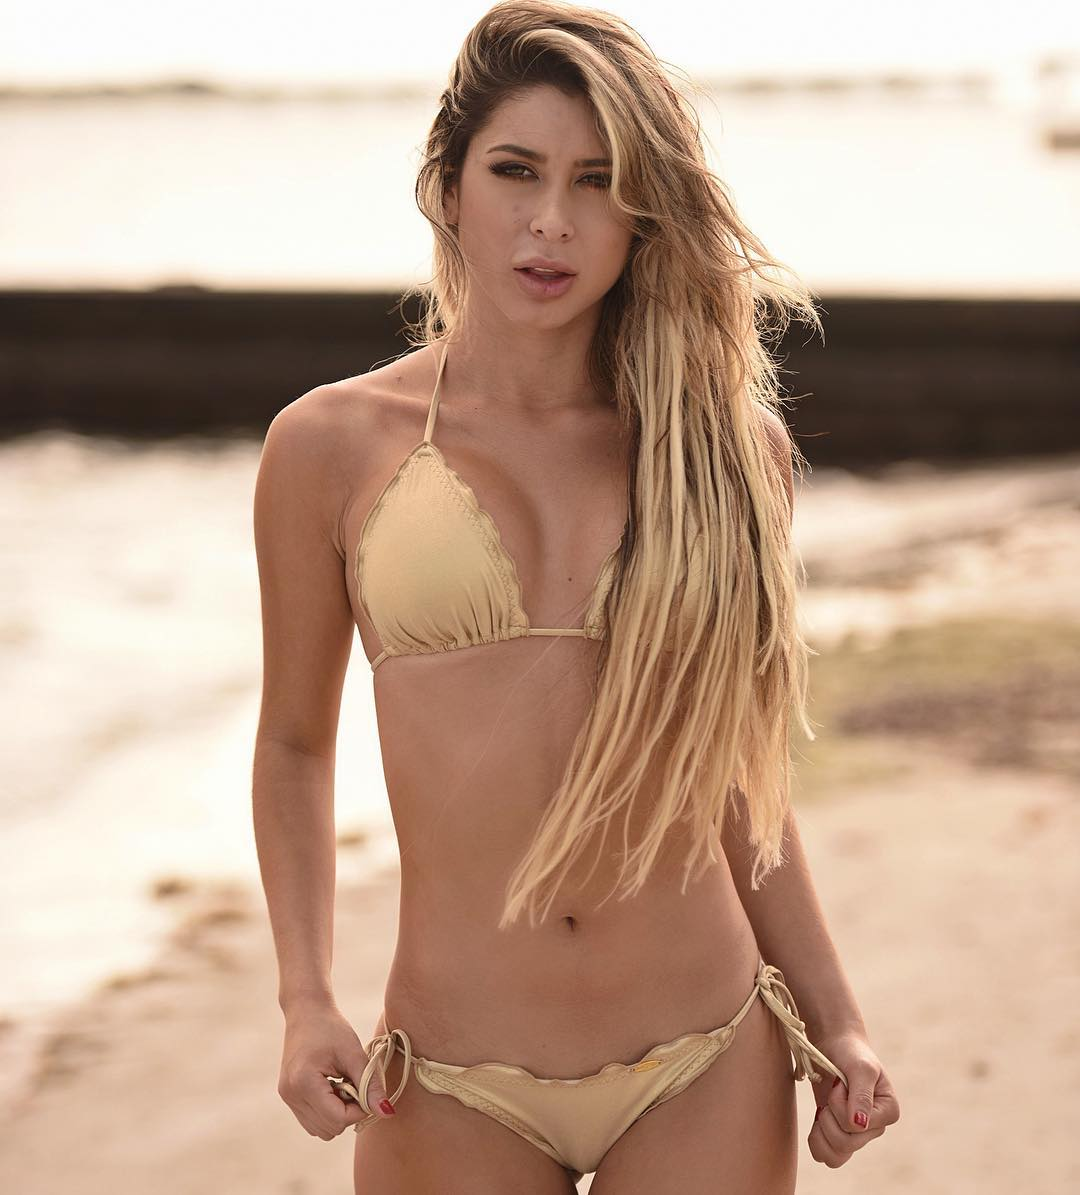 Images Laura Monroy naked (45 photo), Tits, Sideboobs, Boobs, butt 2015